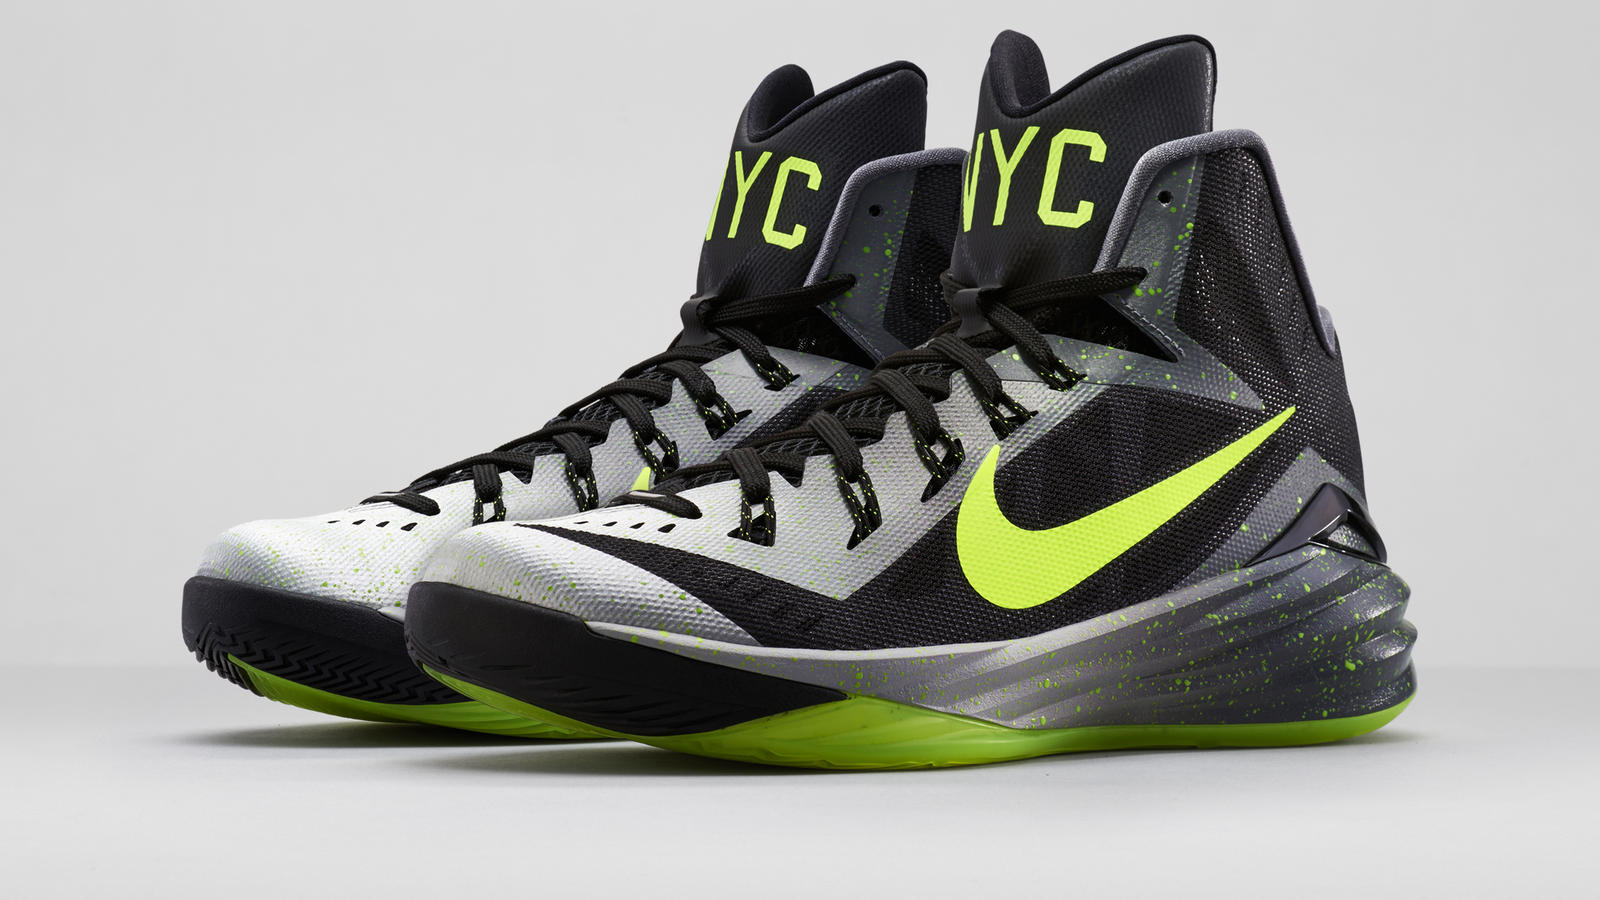 e4e55c324962e8 sale the nike hyperdunk 2014 city pack will make its on court debut at the  2014